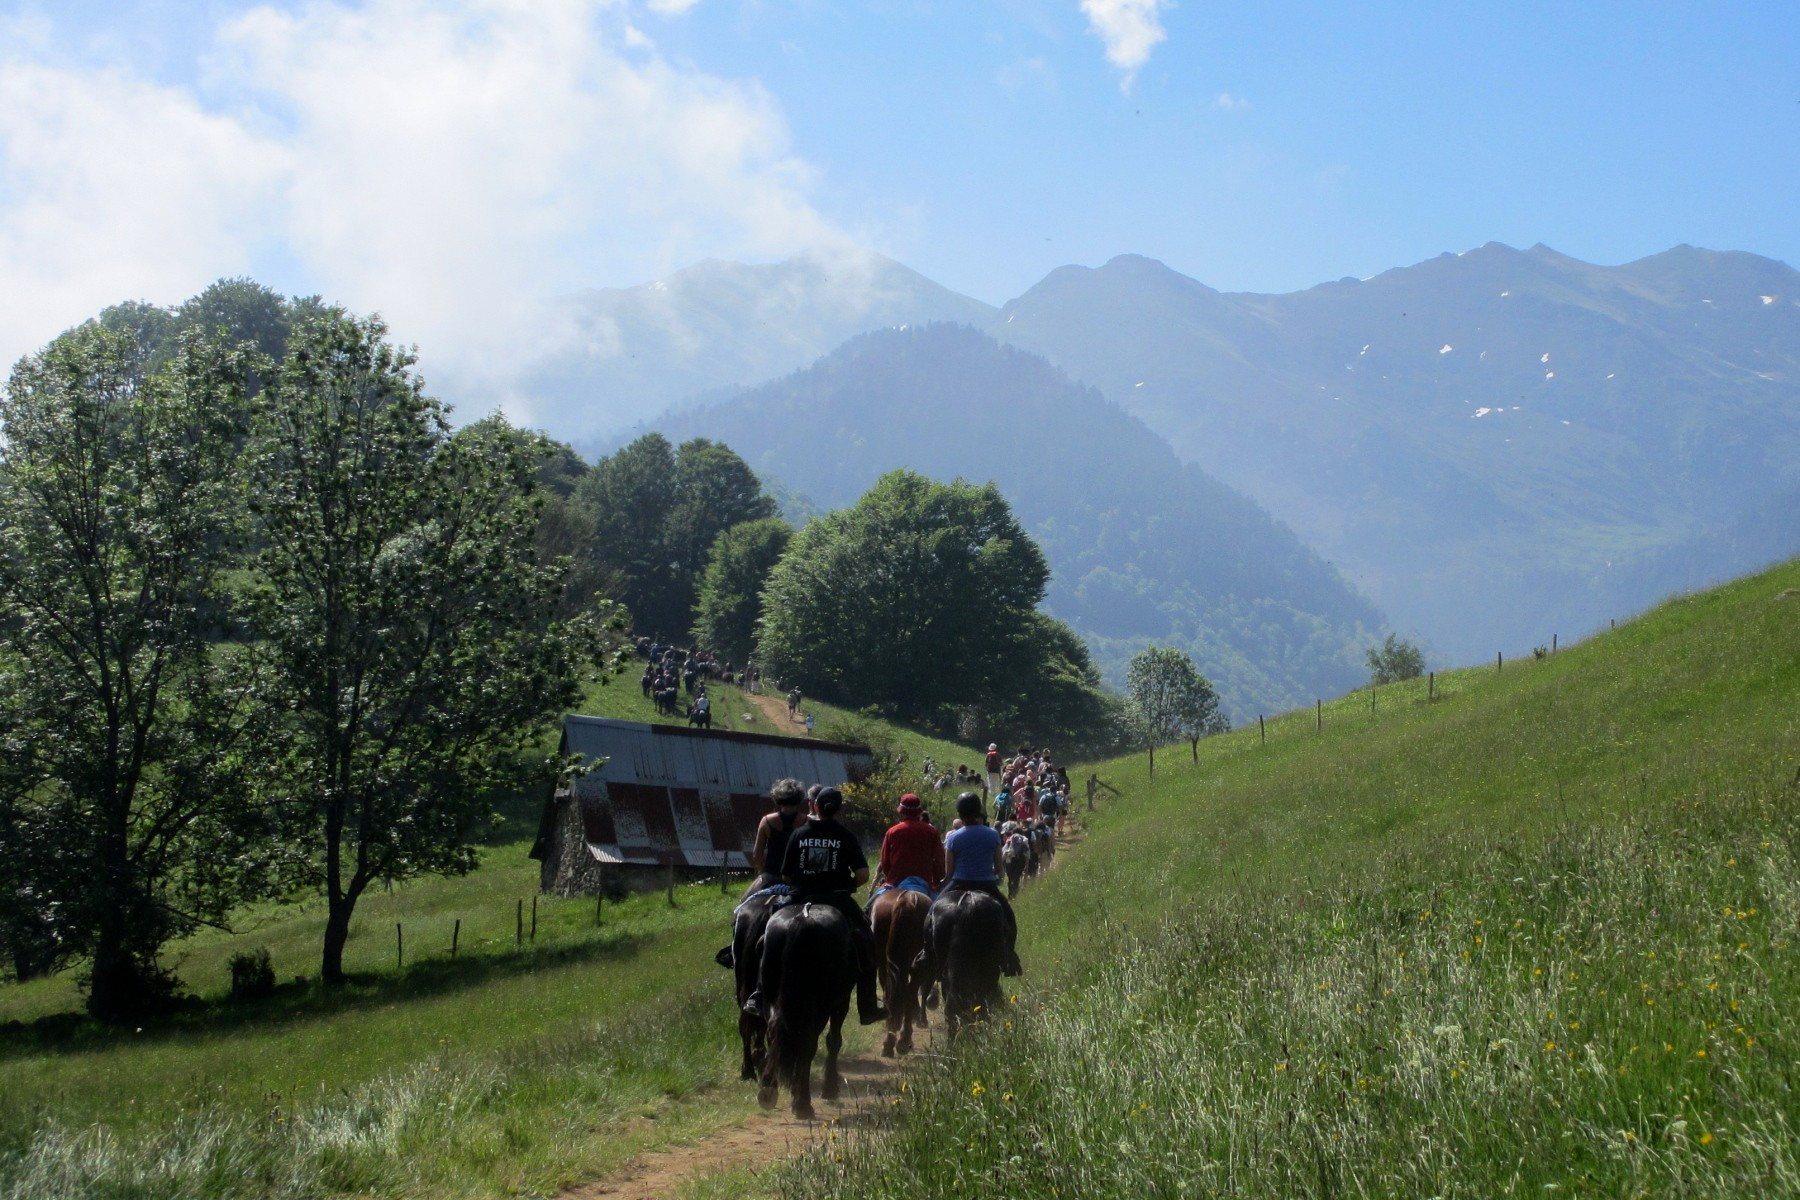 Following Meren horses during transhumance tradition